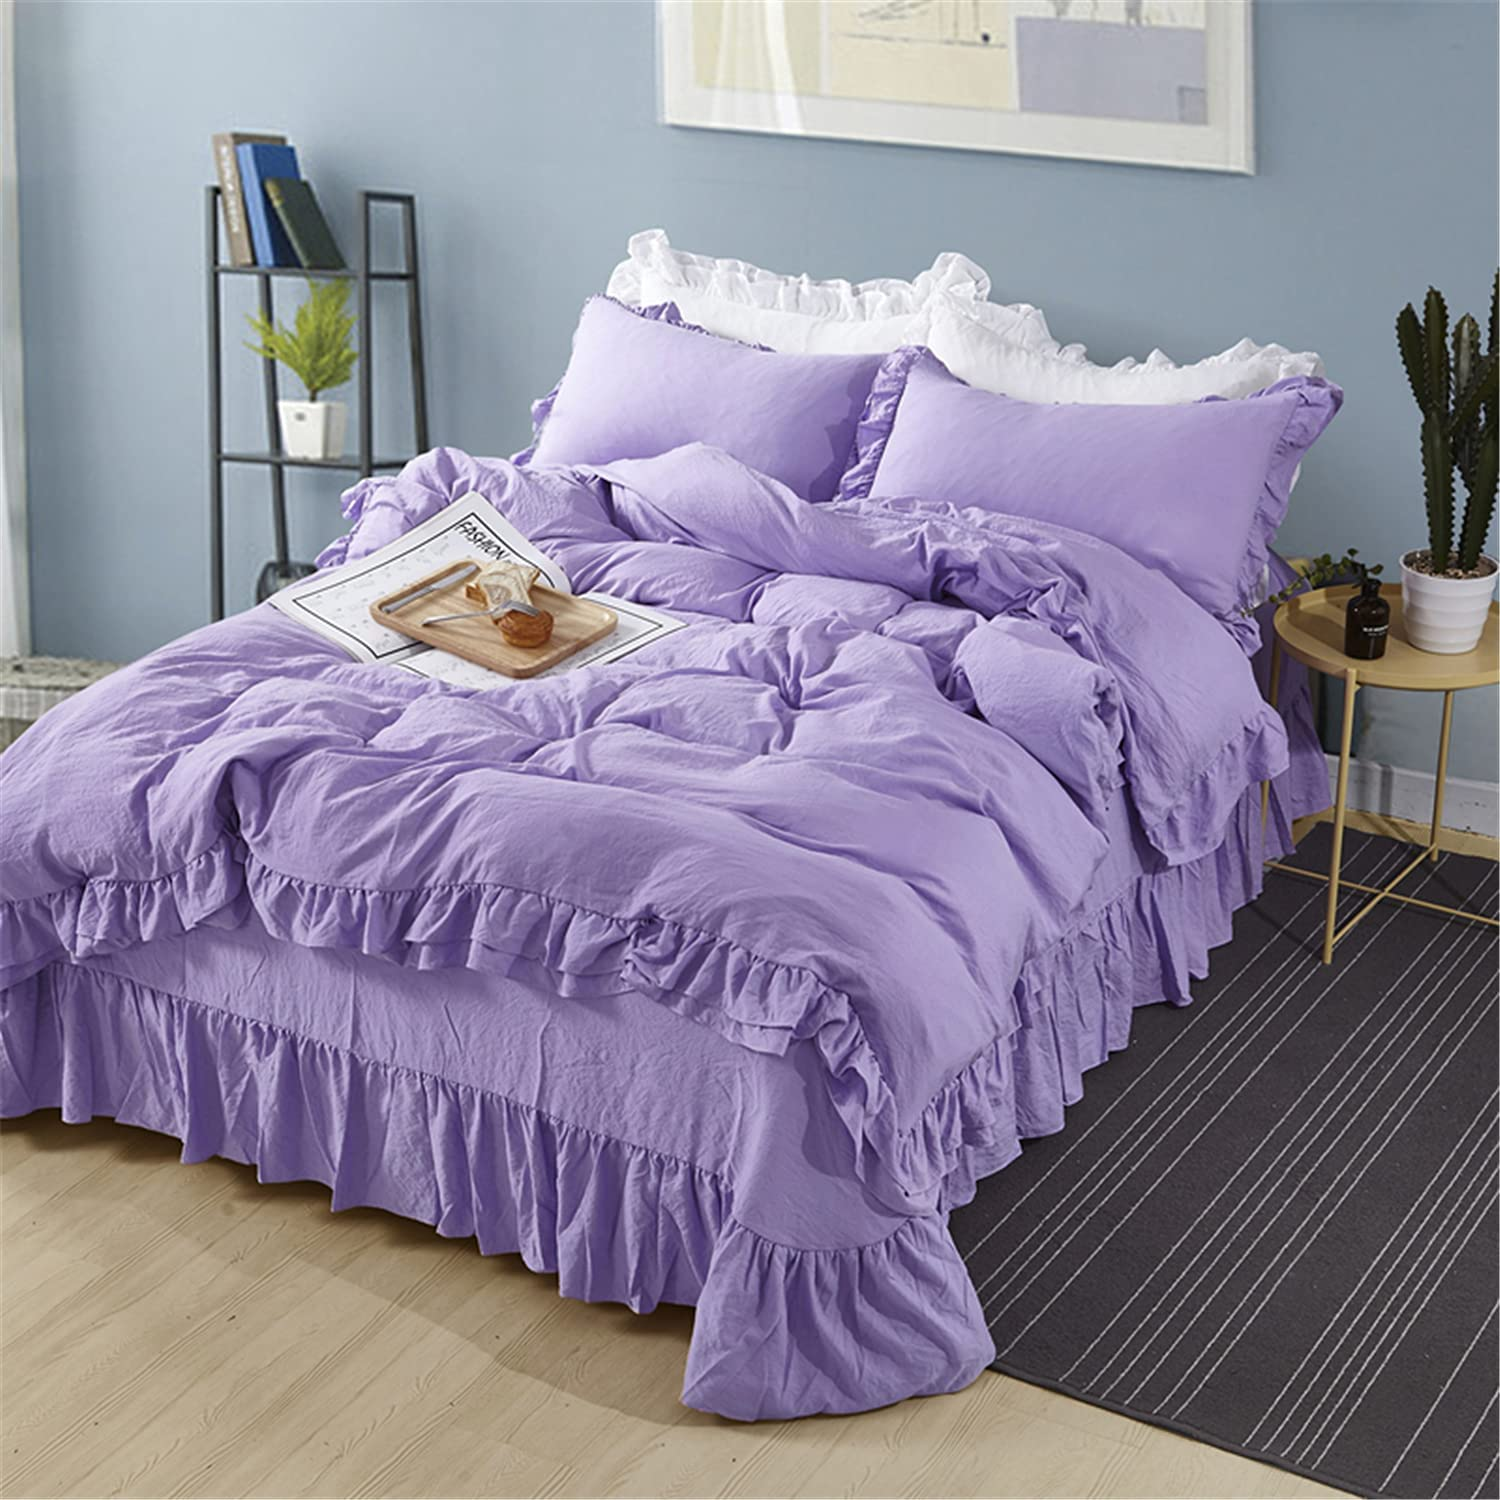 MOOWOO New Ranking TOP13 products world's highest quality popular Ruffle Duvet Cover Set and Microf Breathable Washed Soft